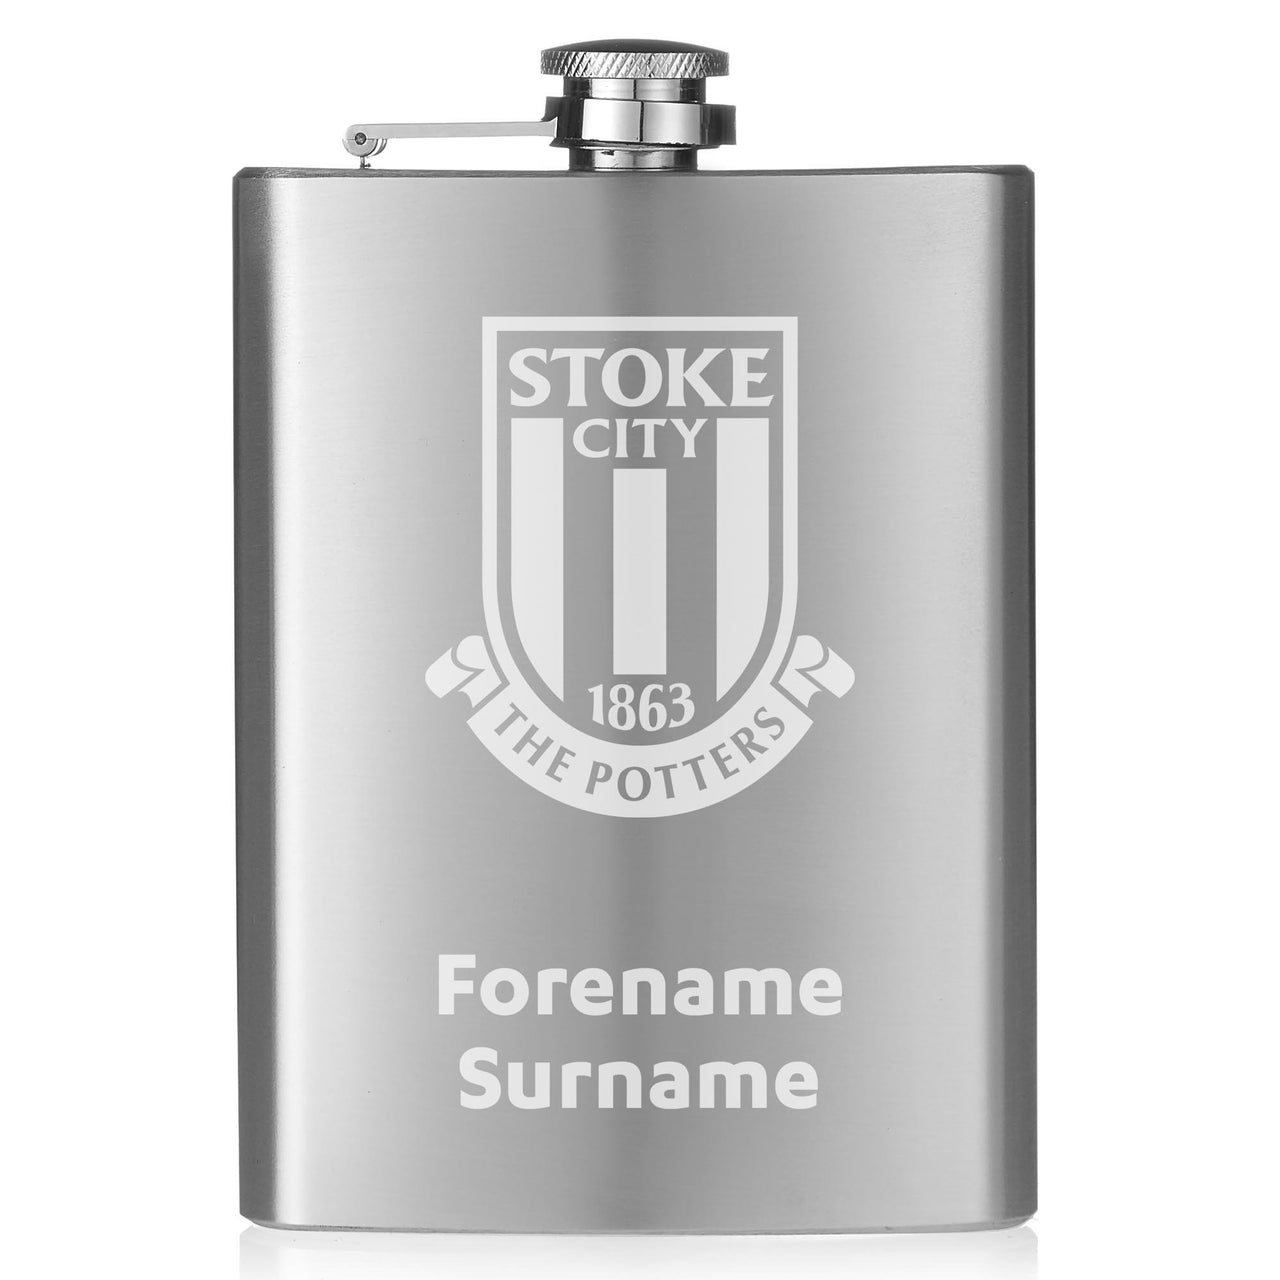 Stoke City FC Crest Hip Flask